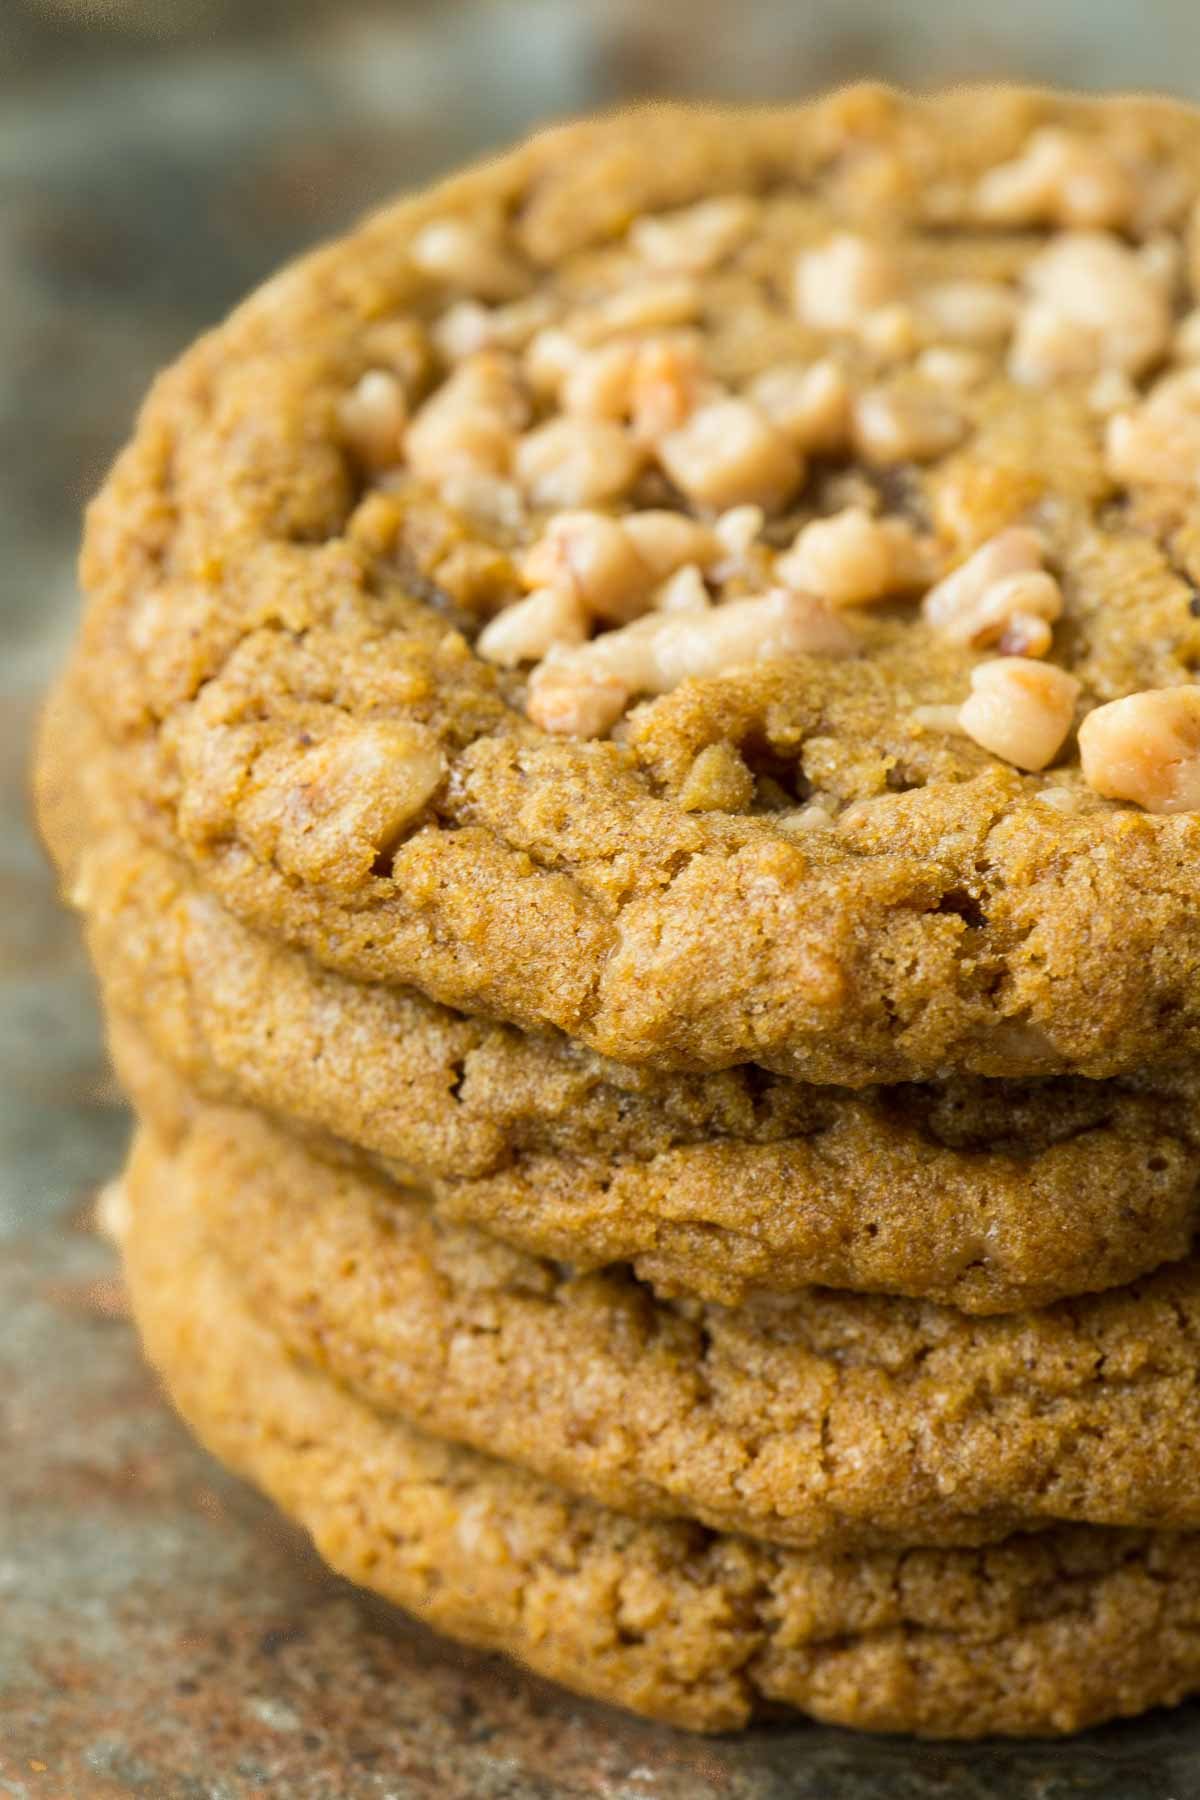 Closeup photo of a stack of Crispy, Chewy Toffee Pumpkin Cookies on a slate surface.